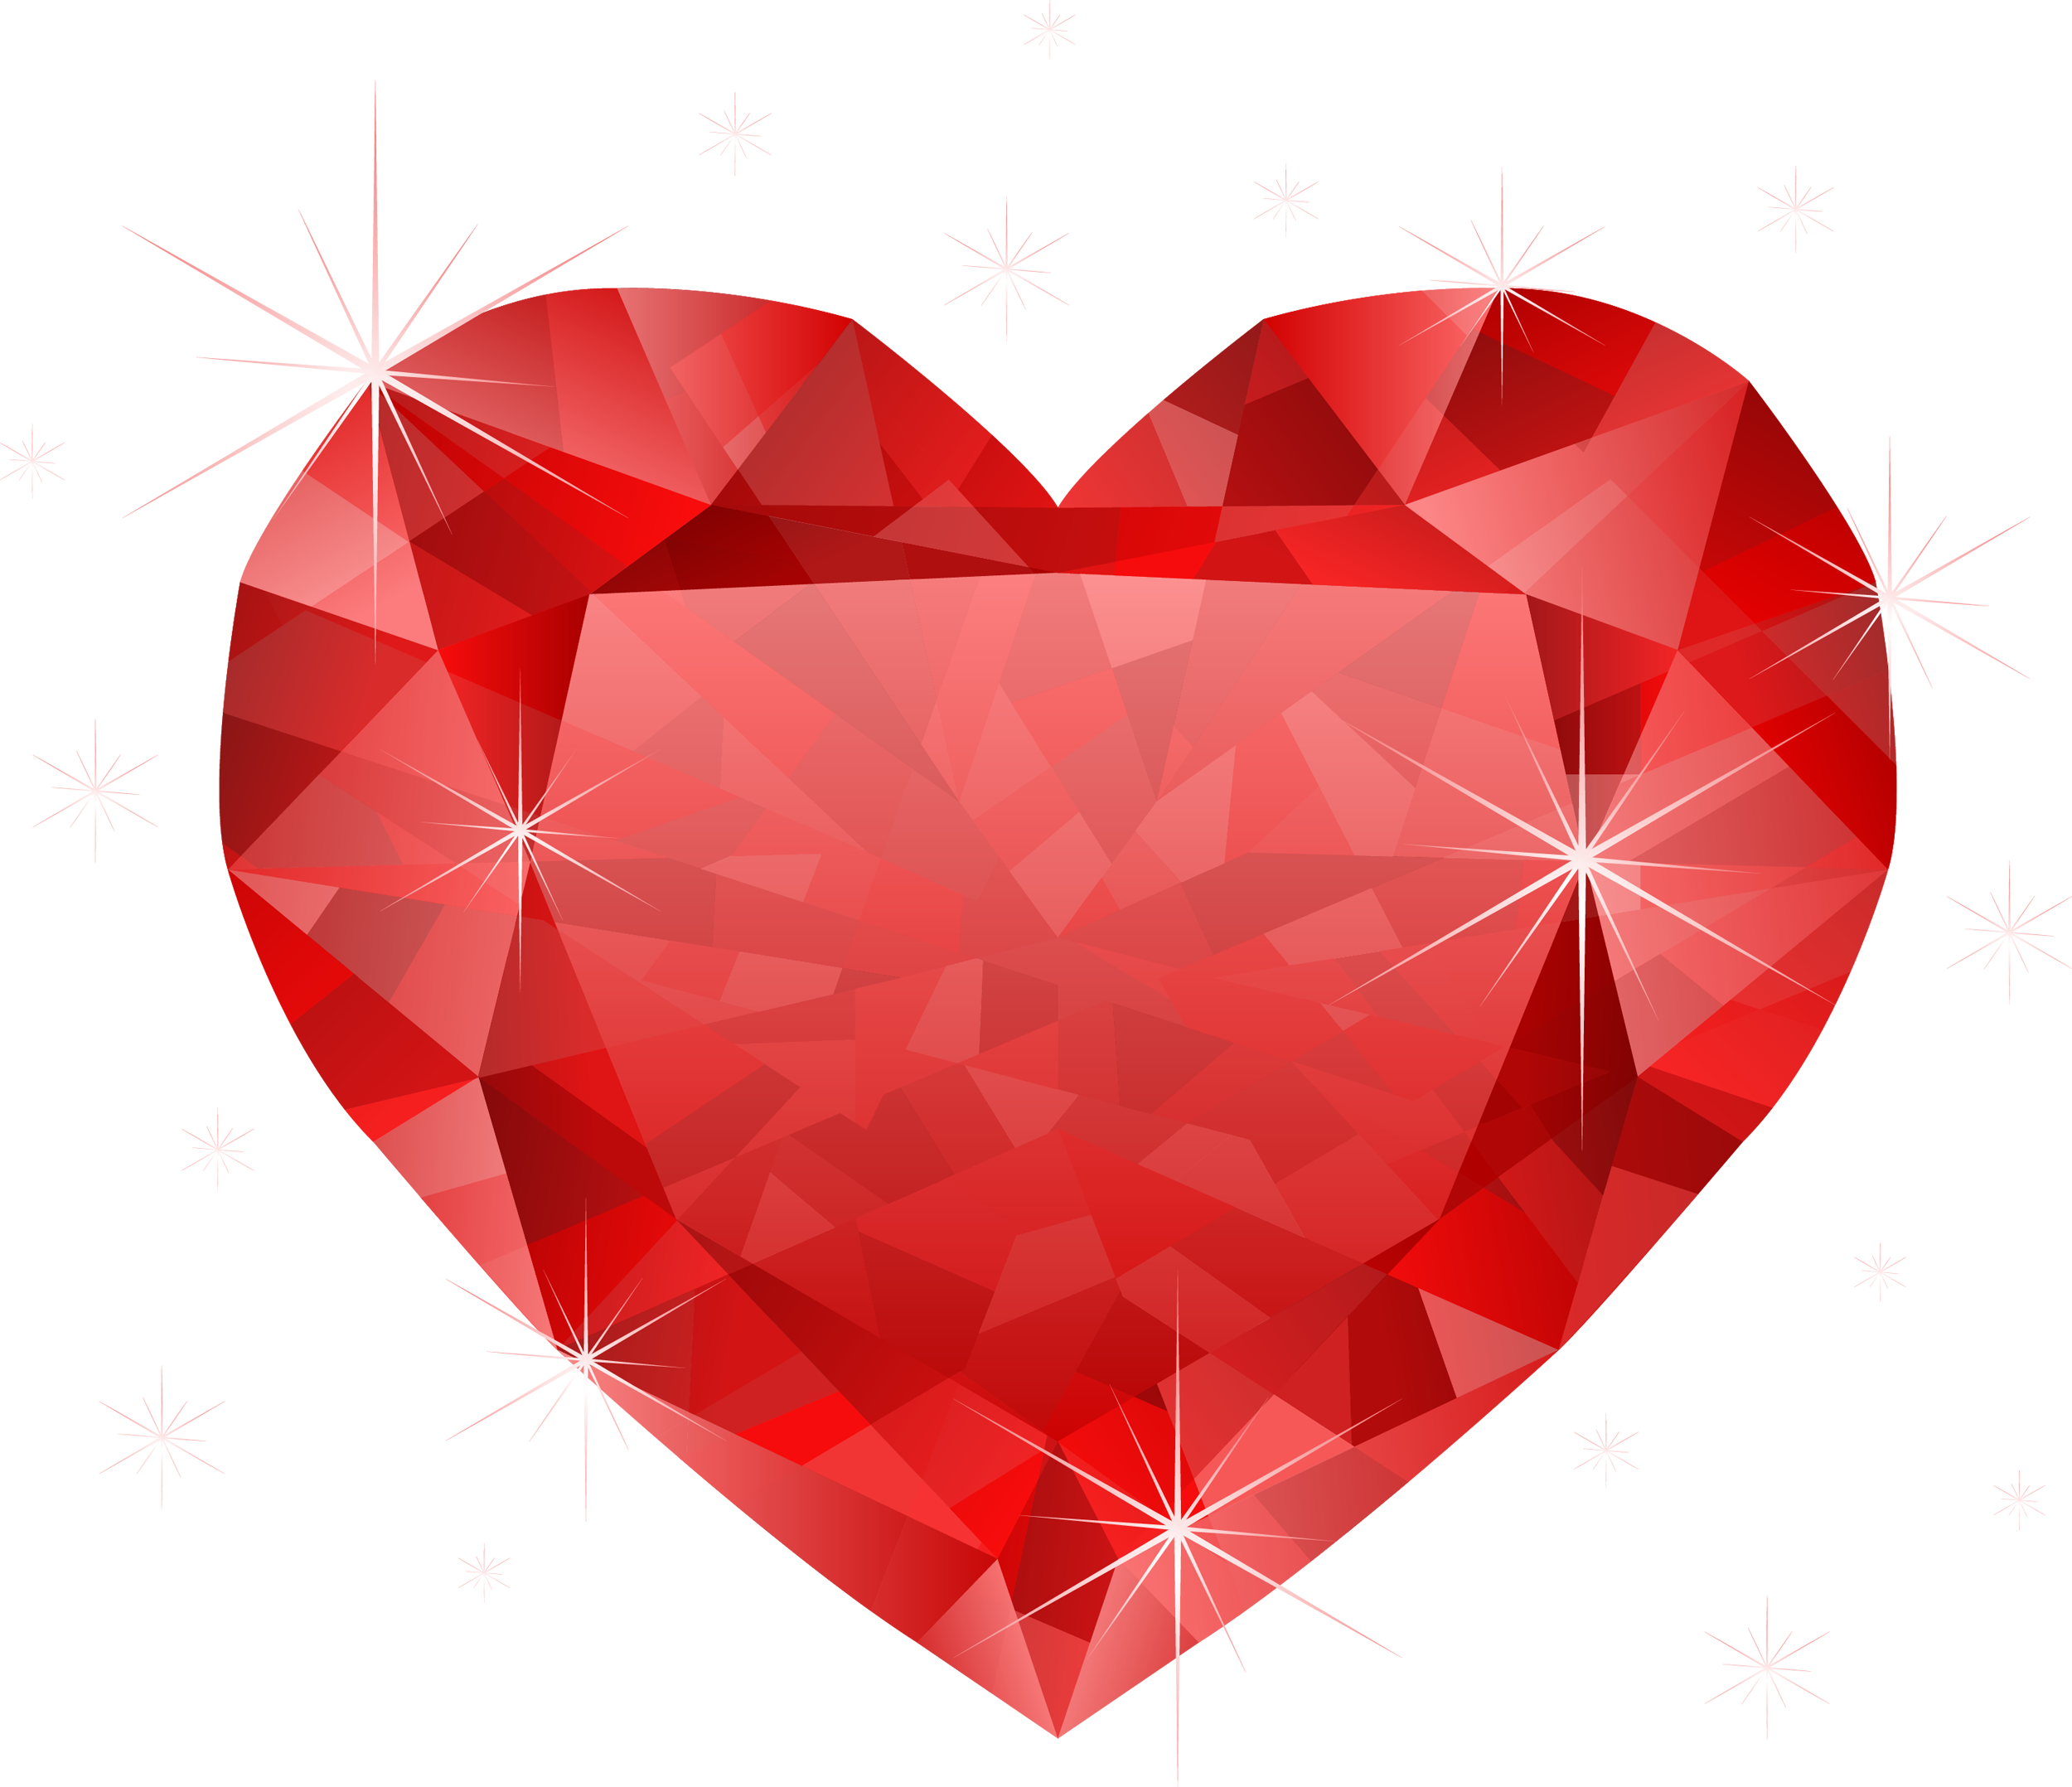 Clipart hearts vector. Large transparent diamond red